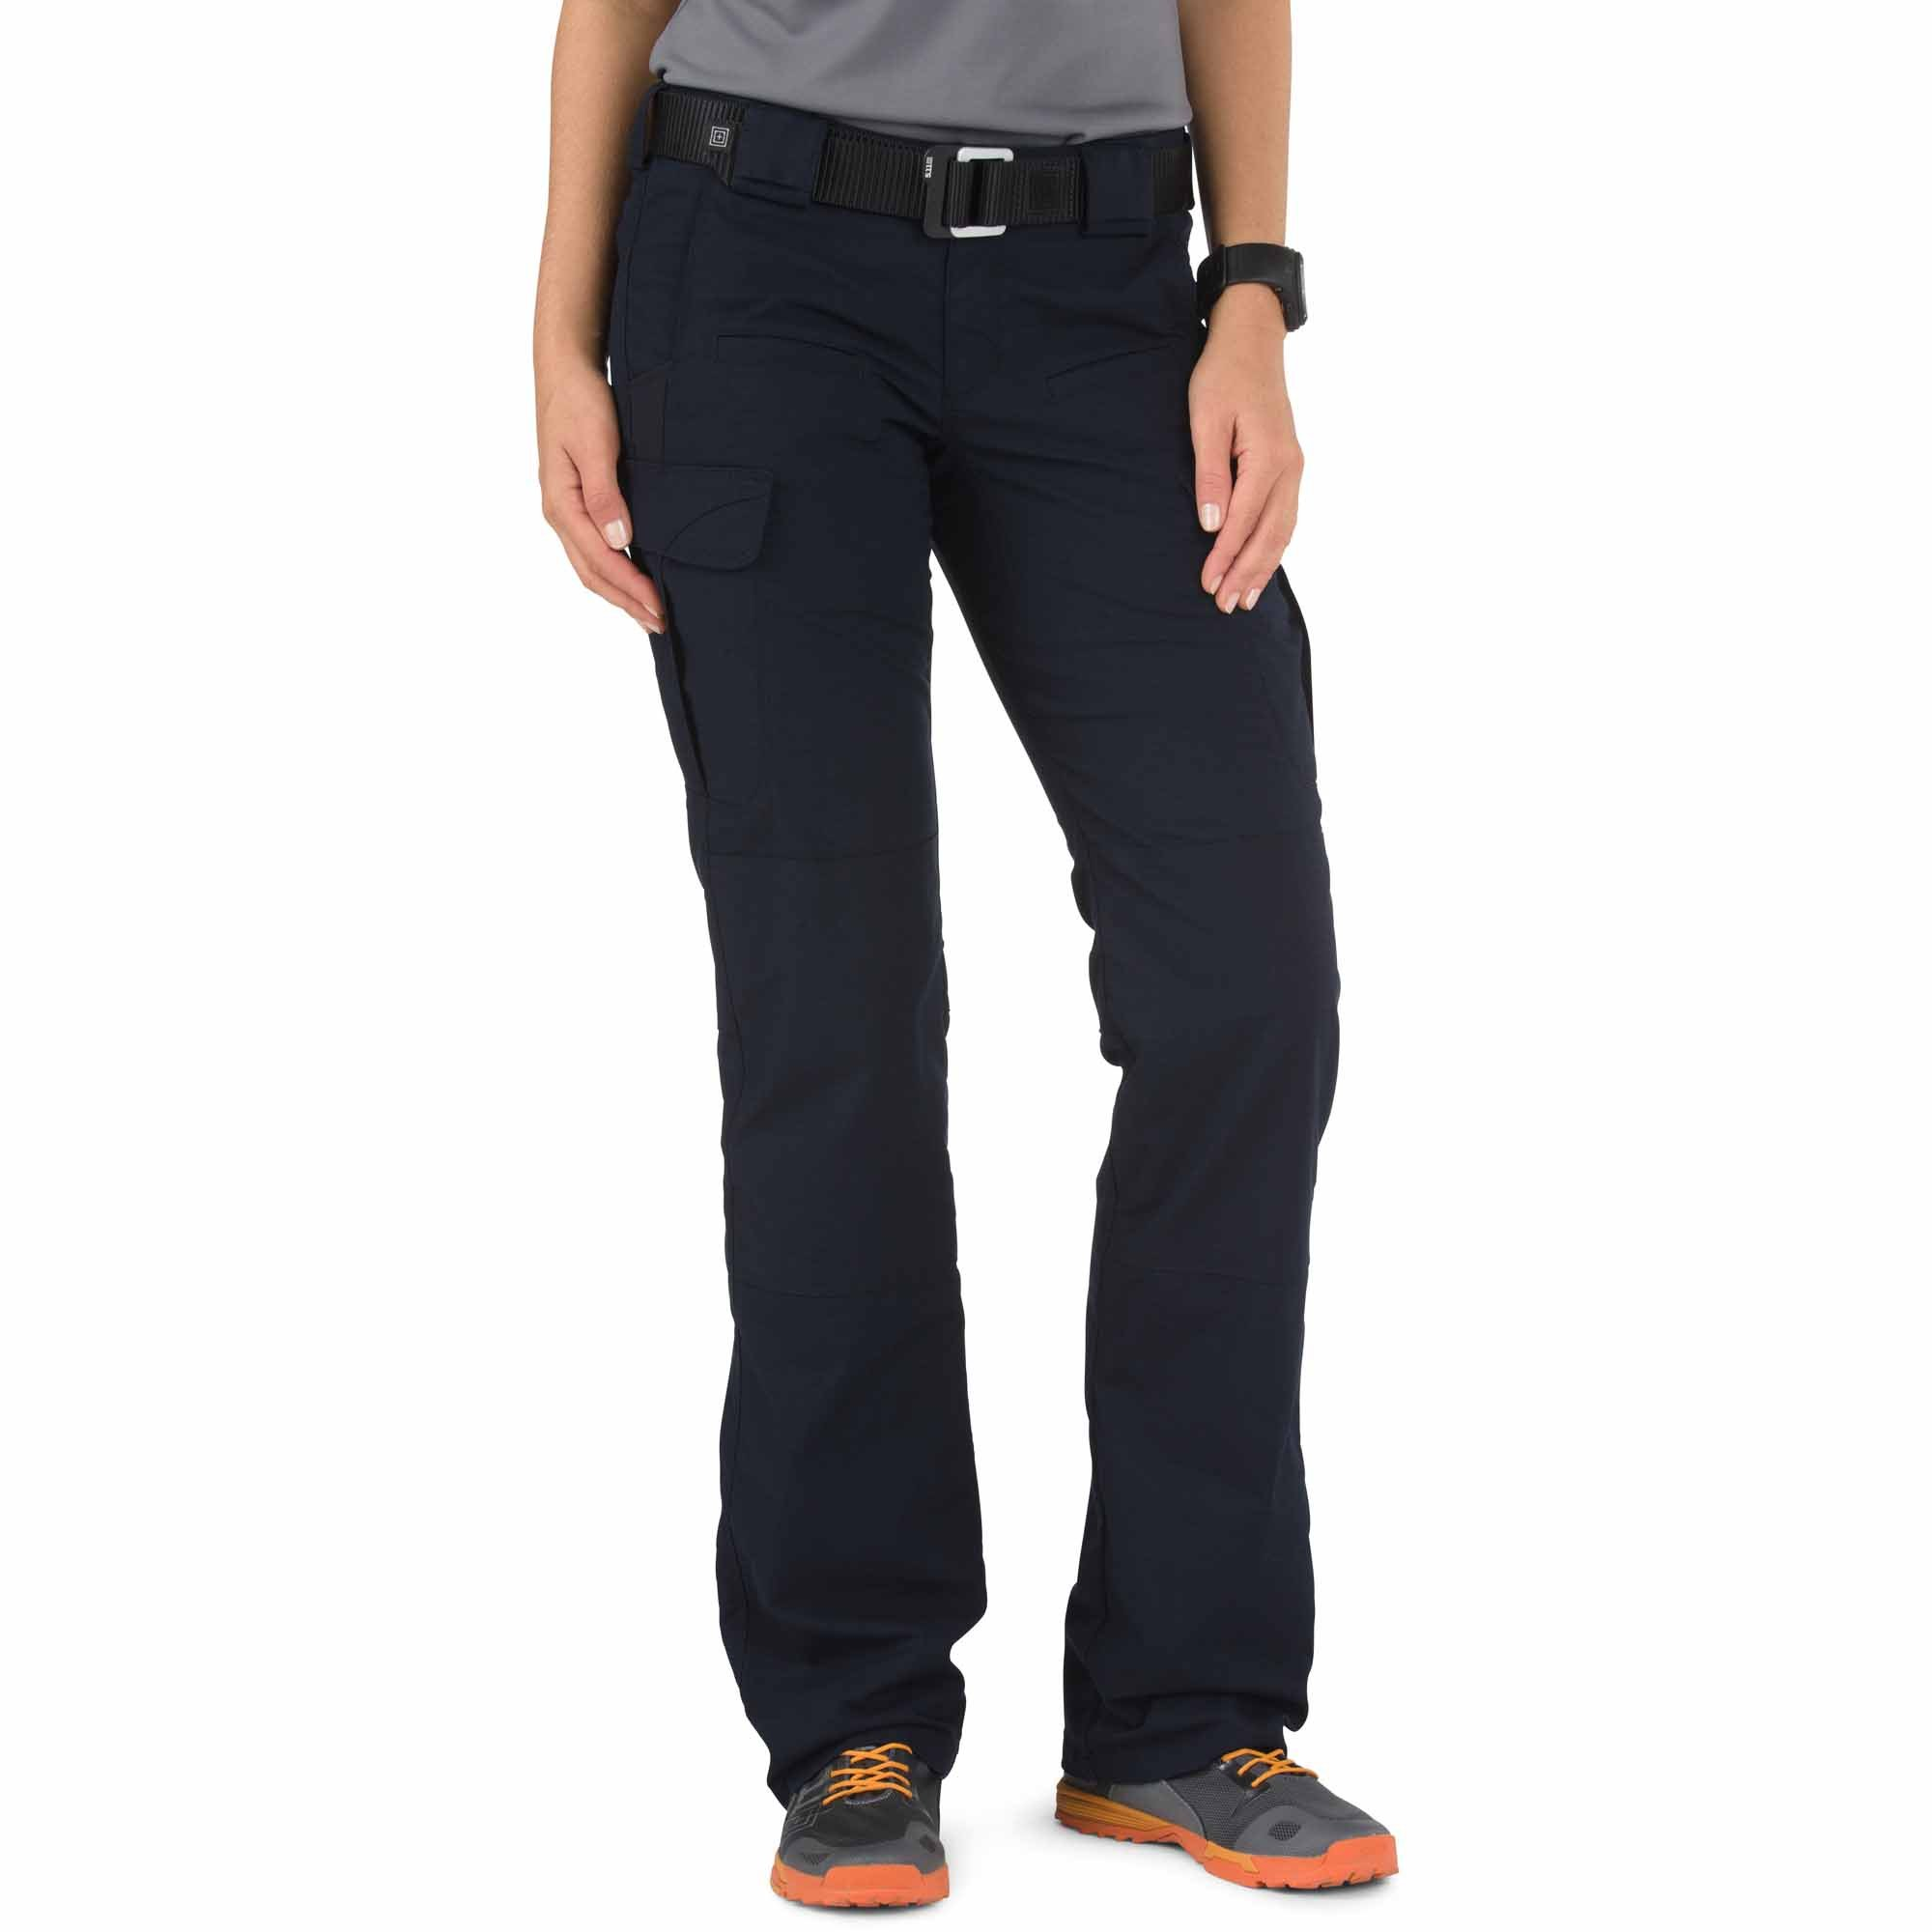 5.11 Tactical Women's Stryke Covert Cargo Pants, Stretchable Fabric, Gusseted Construction, Style 64412 by 5.11